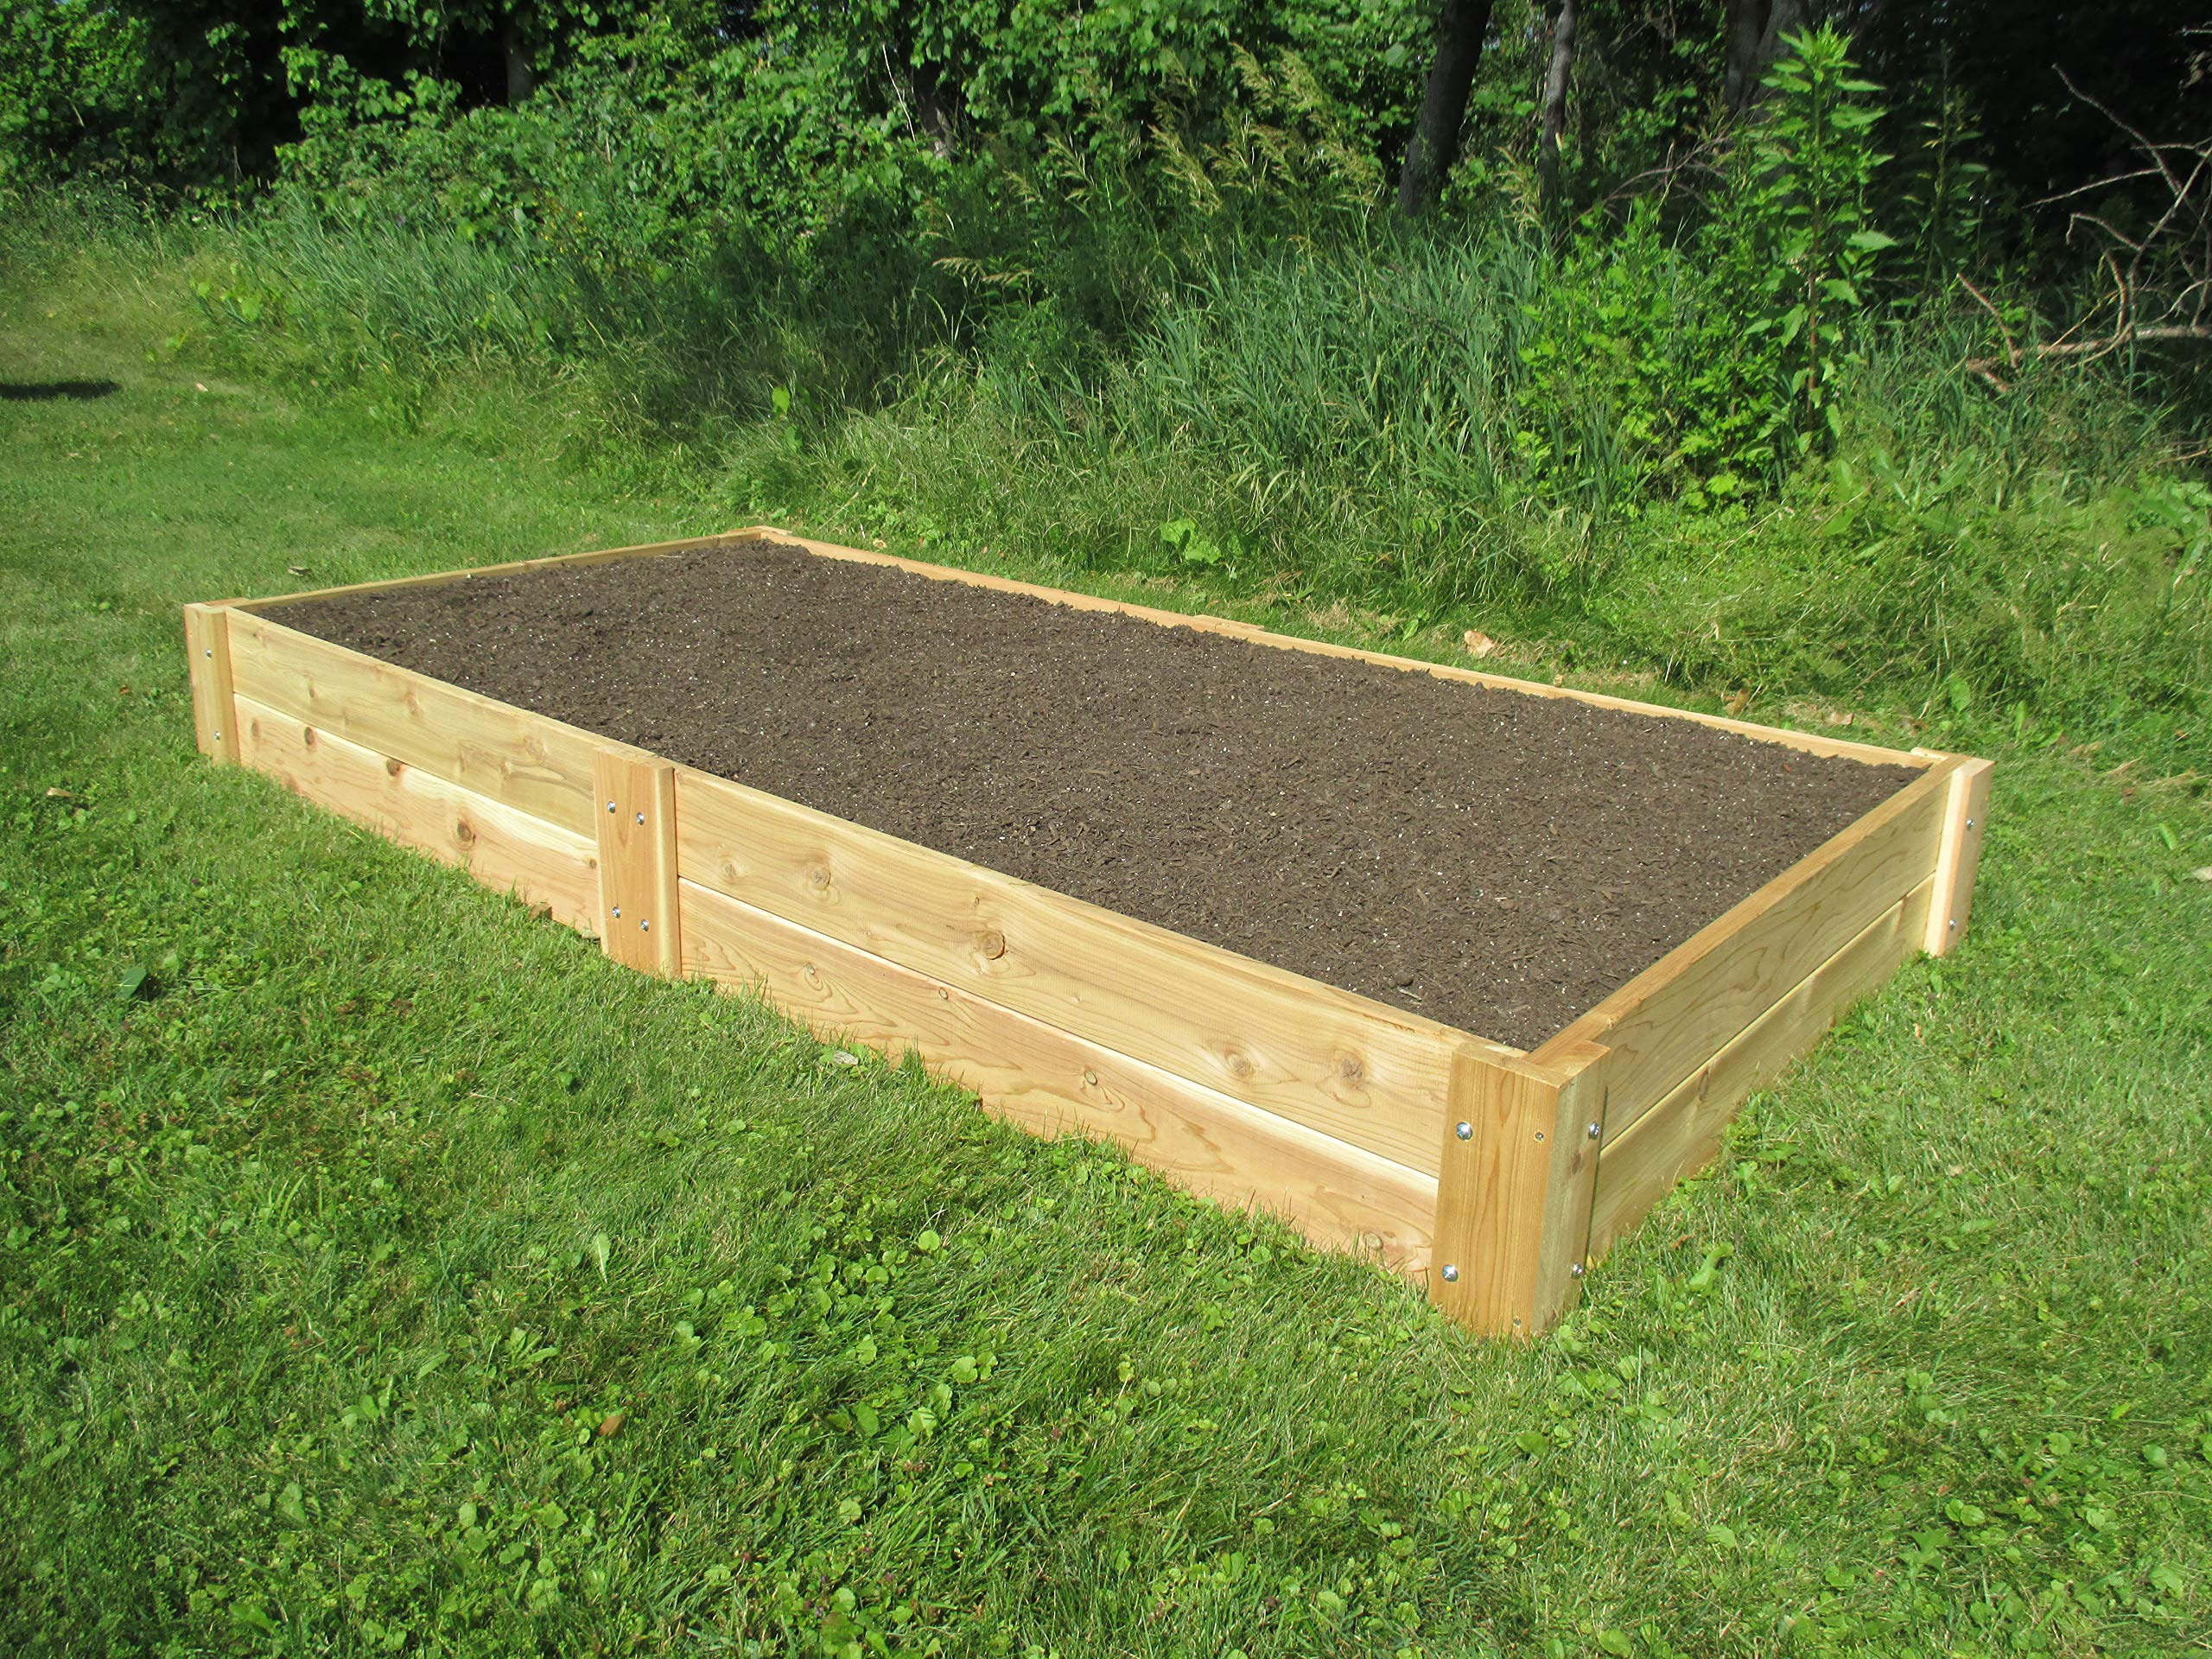 Infinite Cedar Raised Bed Garden Kit 4'x8'x11 2 Long-lasting raised garden beds made from rot resistant thick Western Red Cedar Boards Easy Assembly –Assembles in minutes and can be easily disassembled as needed. Strong, Quality build – 1″ thick premium quality deck boards combined with strong joint design will not bow under the weight of wet soil and will last for years.